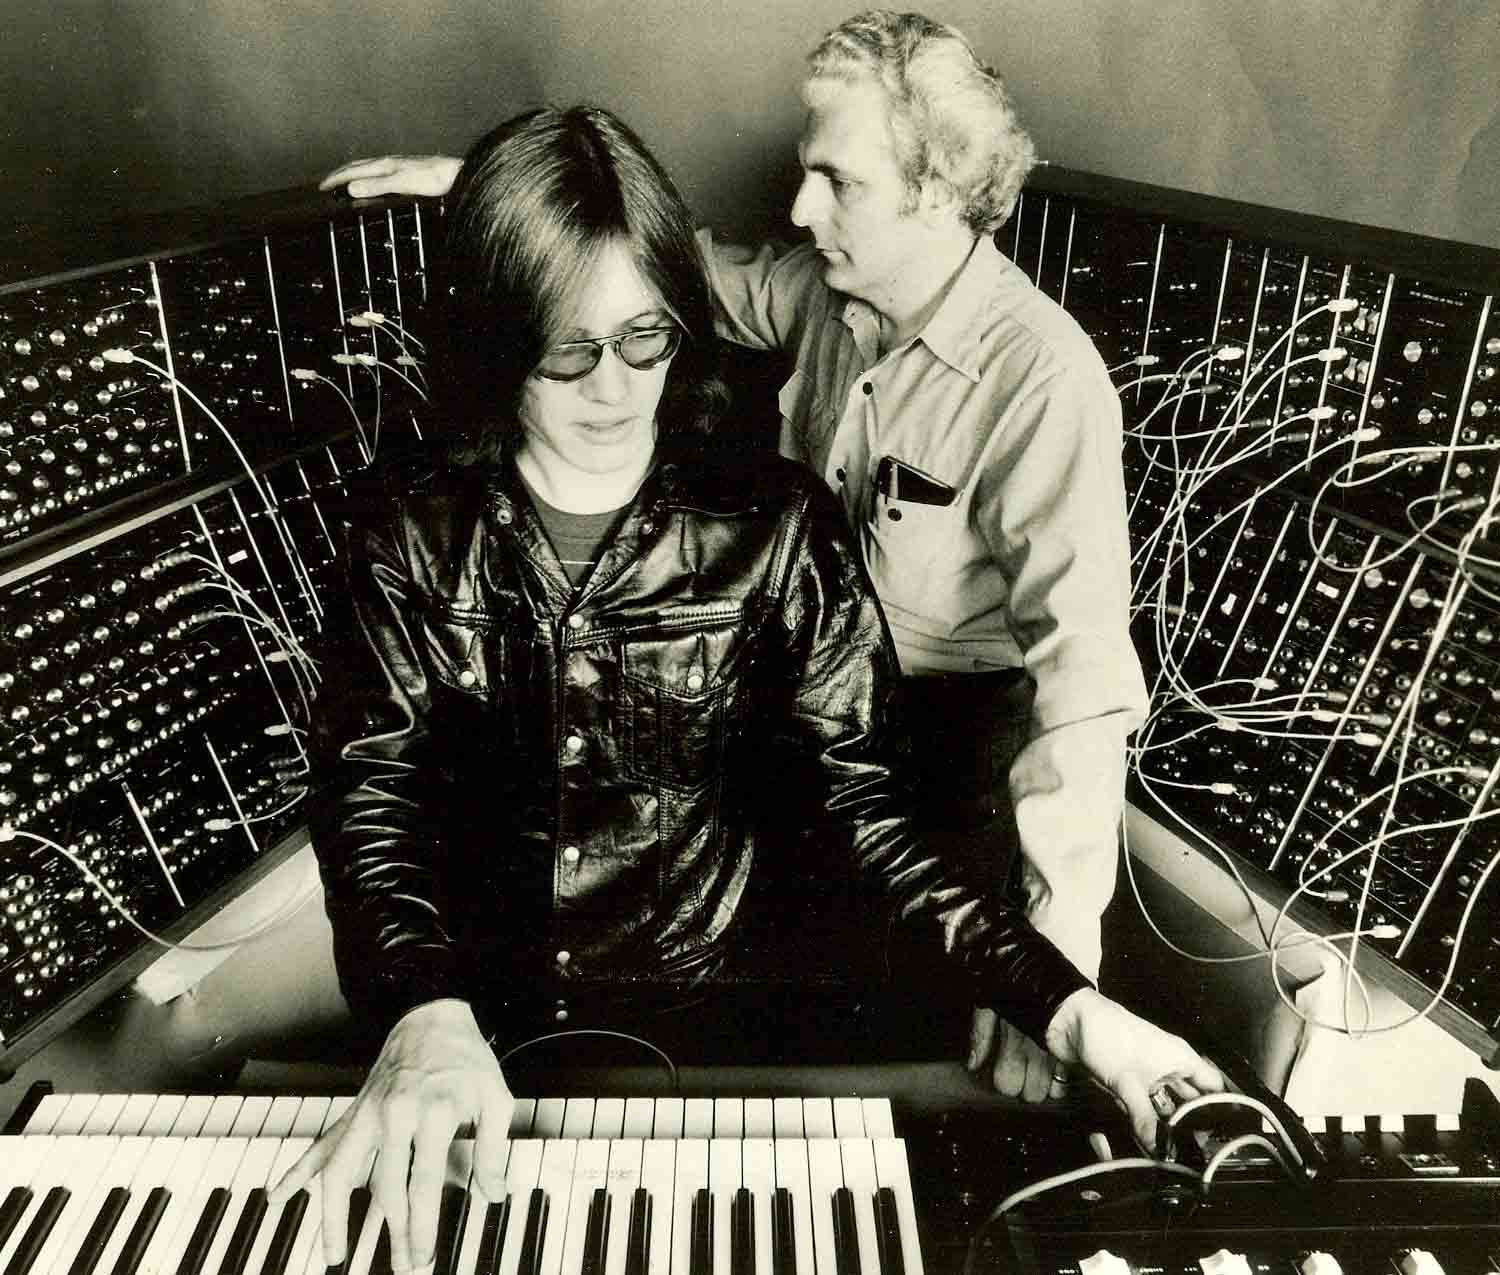 Roger Powell (keys Utopia, David Bowie) remembers Bob